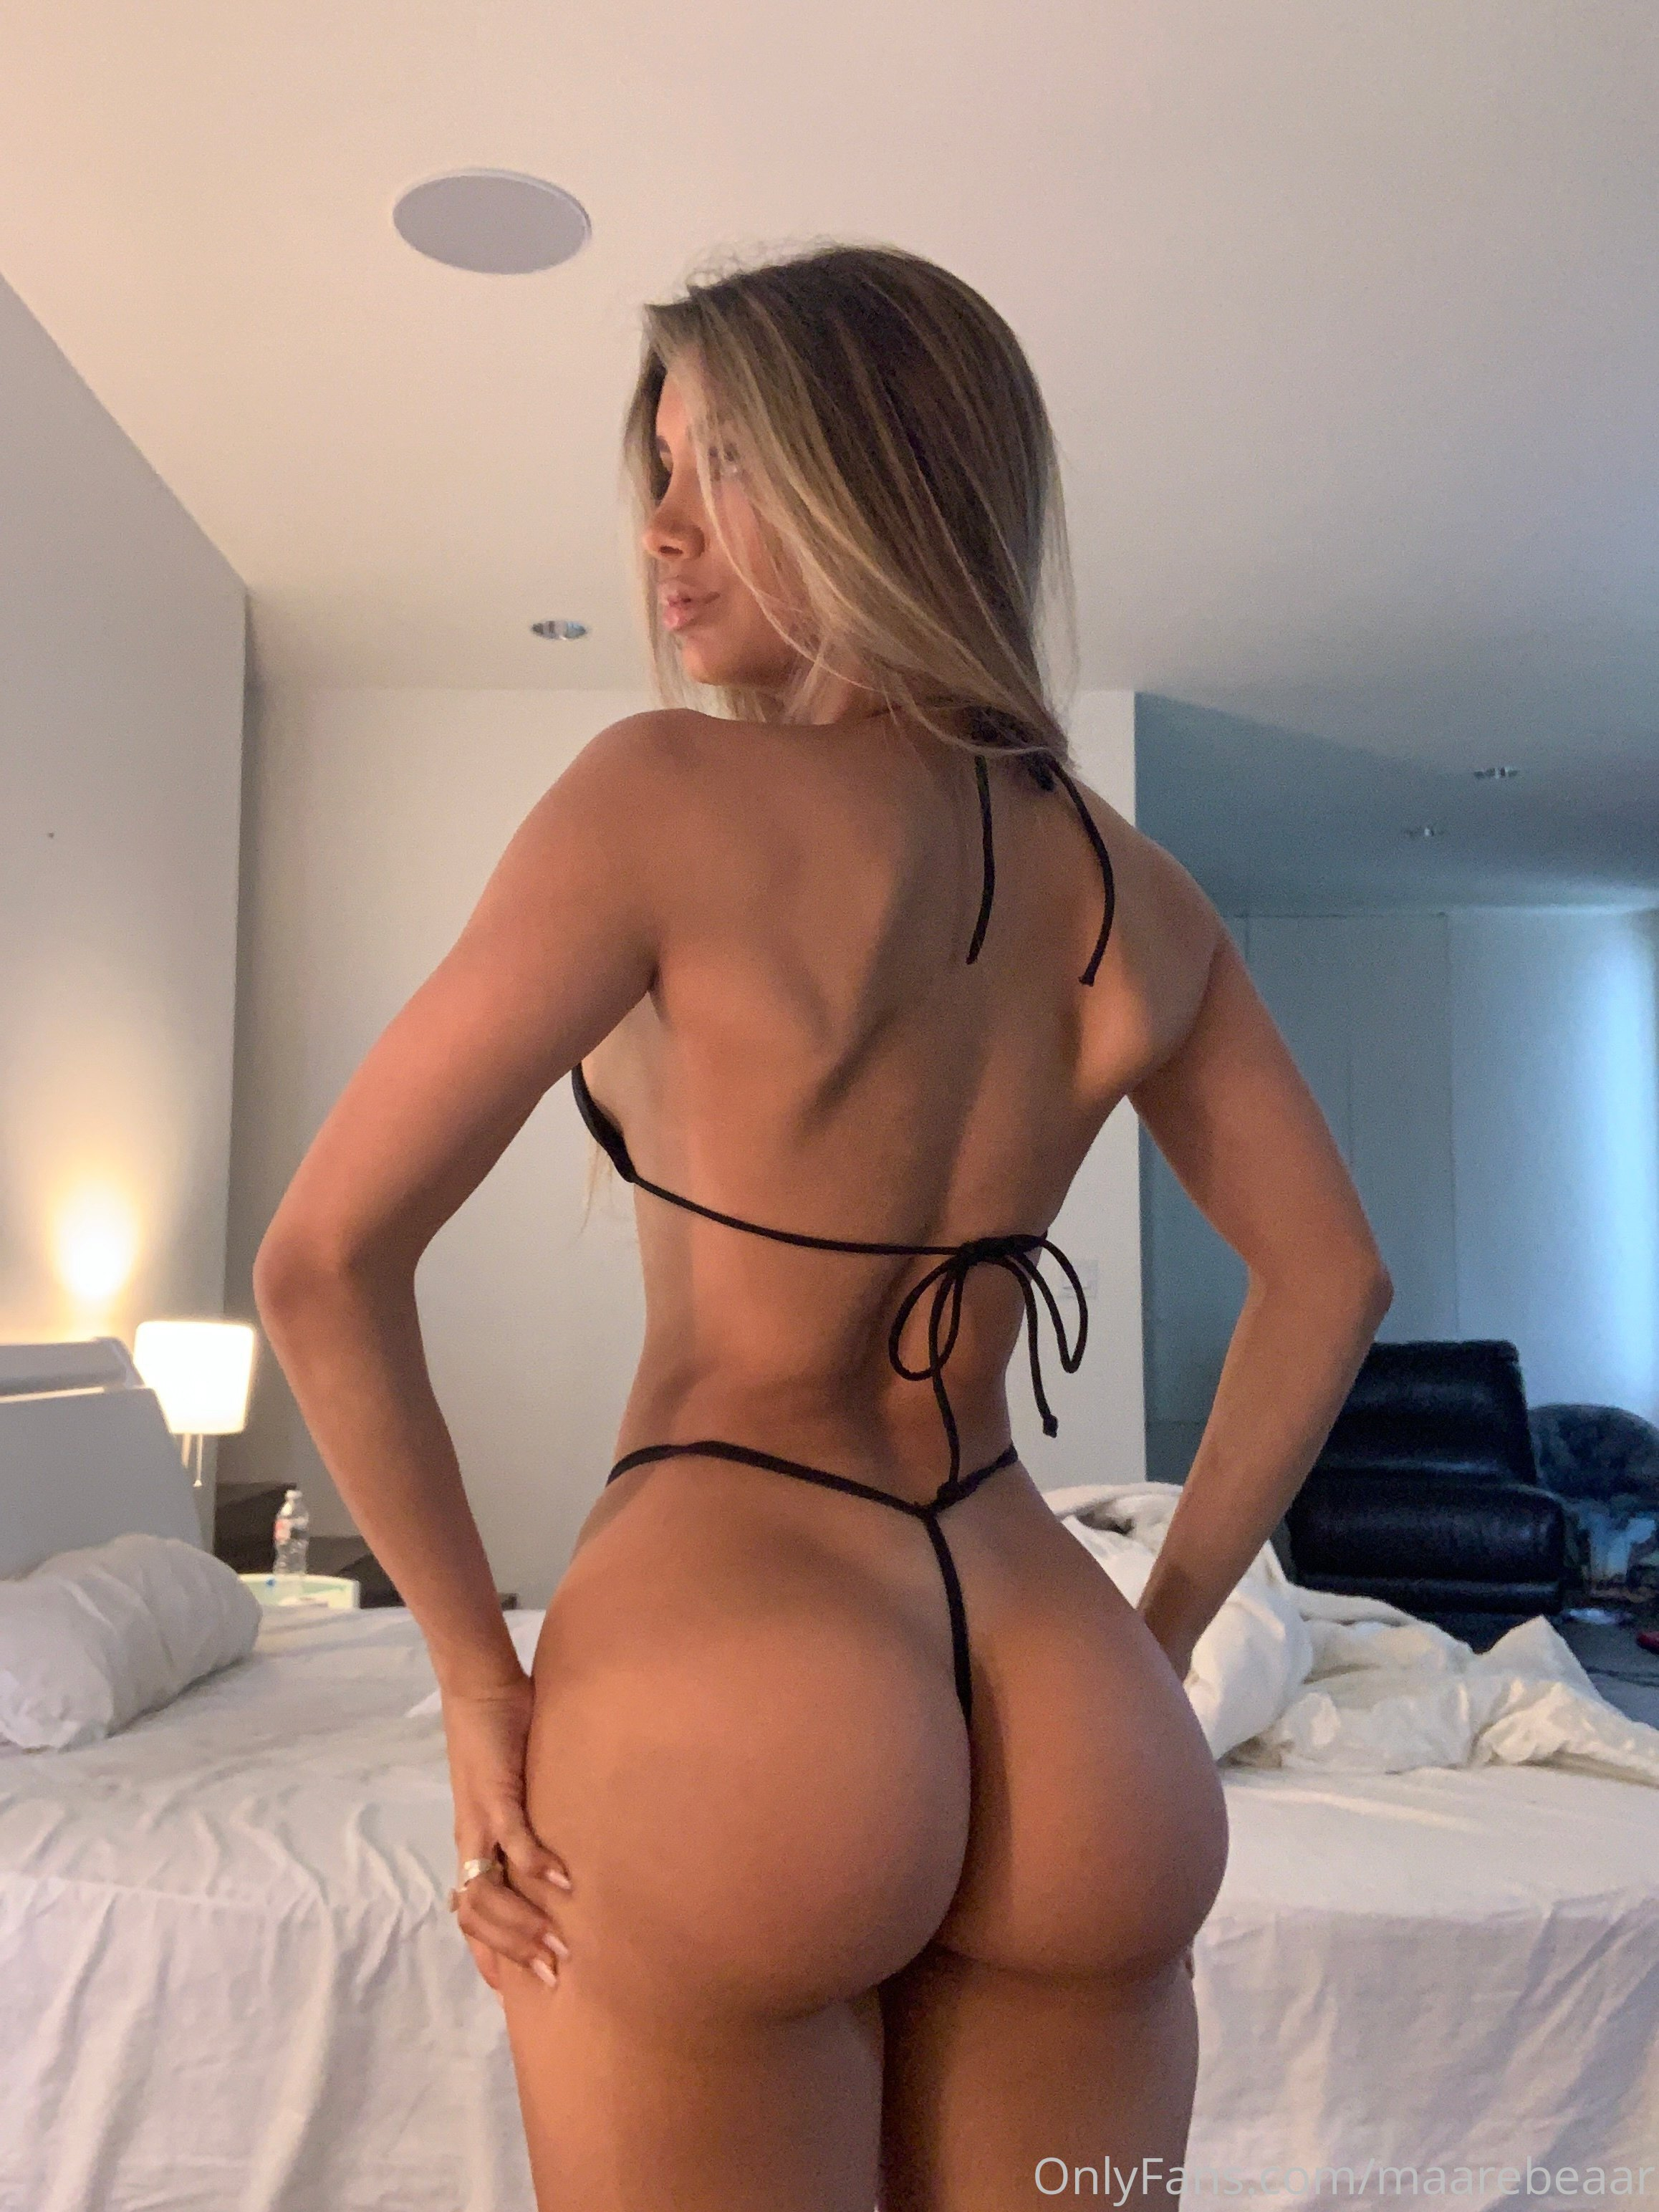 Mariana Morais Onlyfans 0009